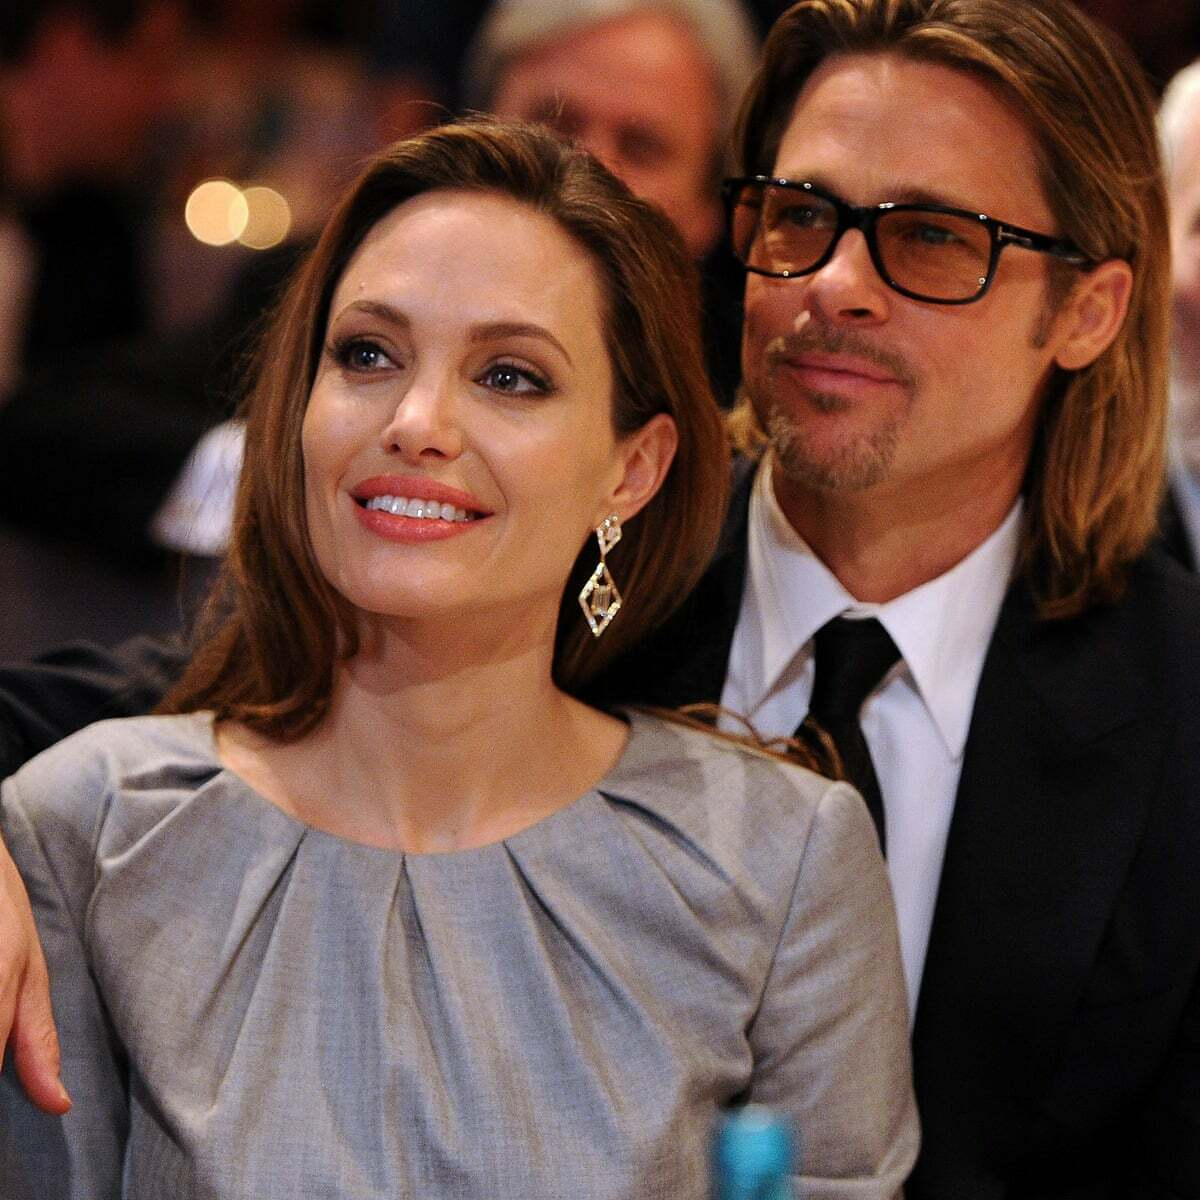 Brad Pitt spoke out how his family was ripped apart following hi sDivorce